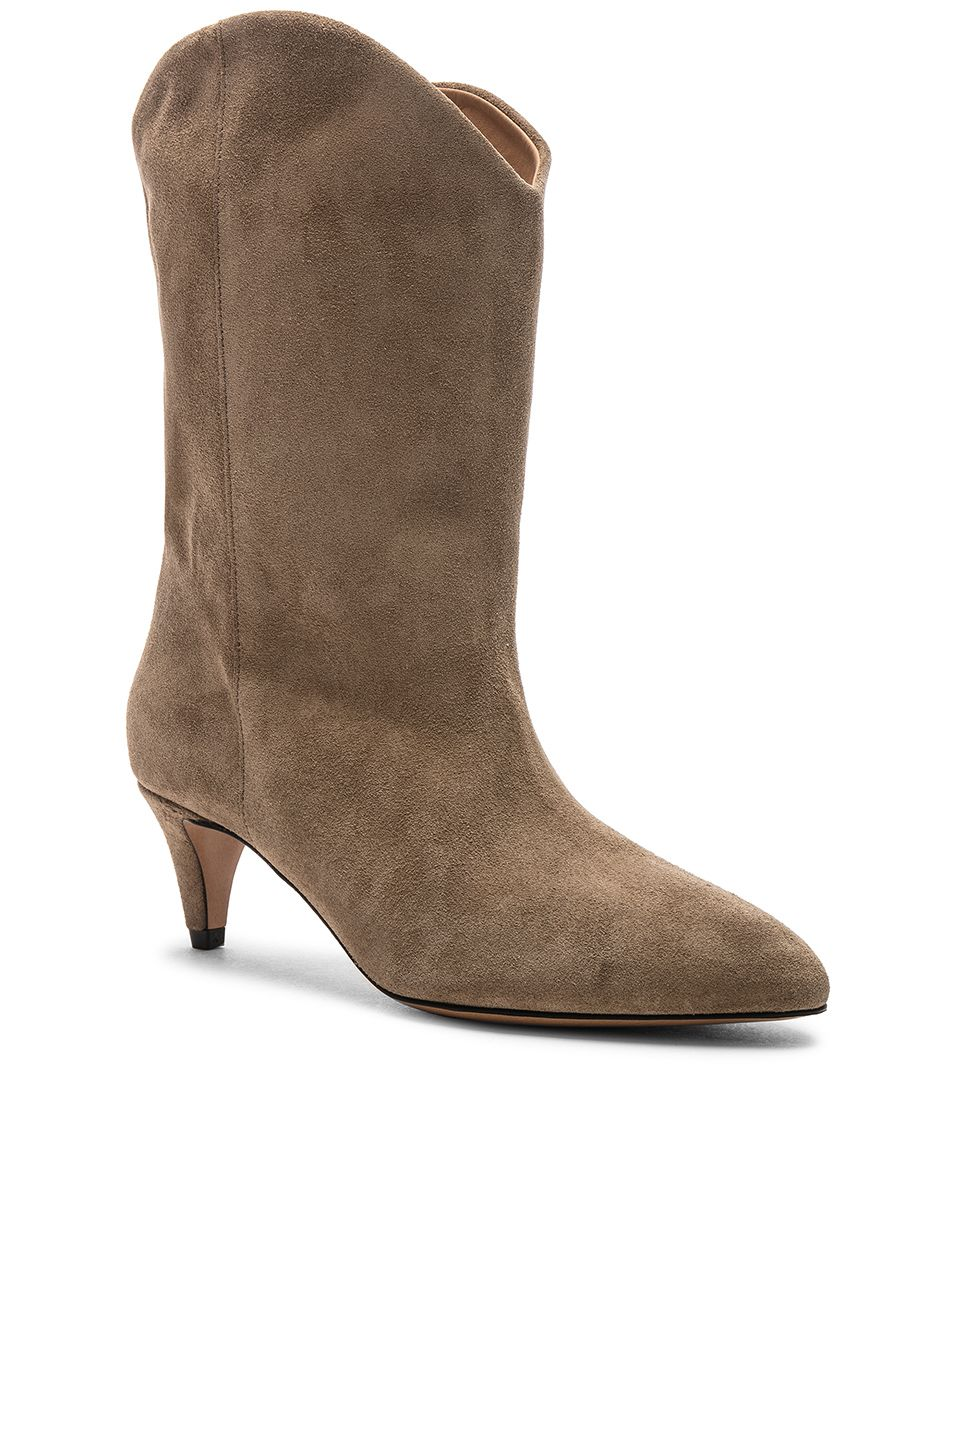 336cb16bdc Image 2 of Isabel Marant Dernee Boot in Taupe | Fashion and ...